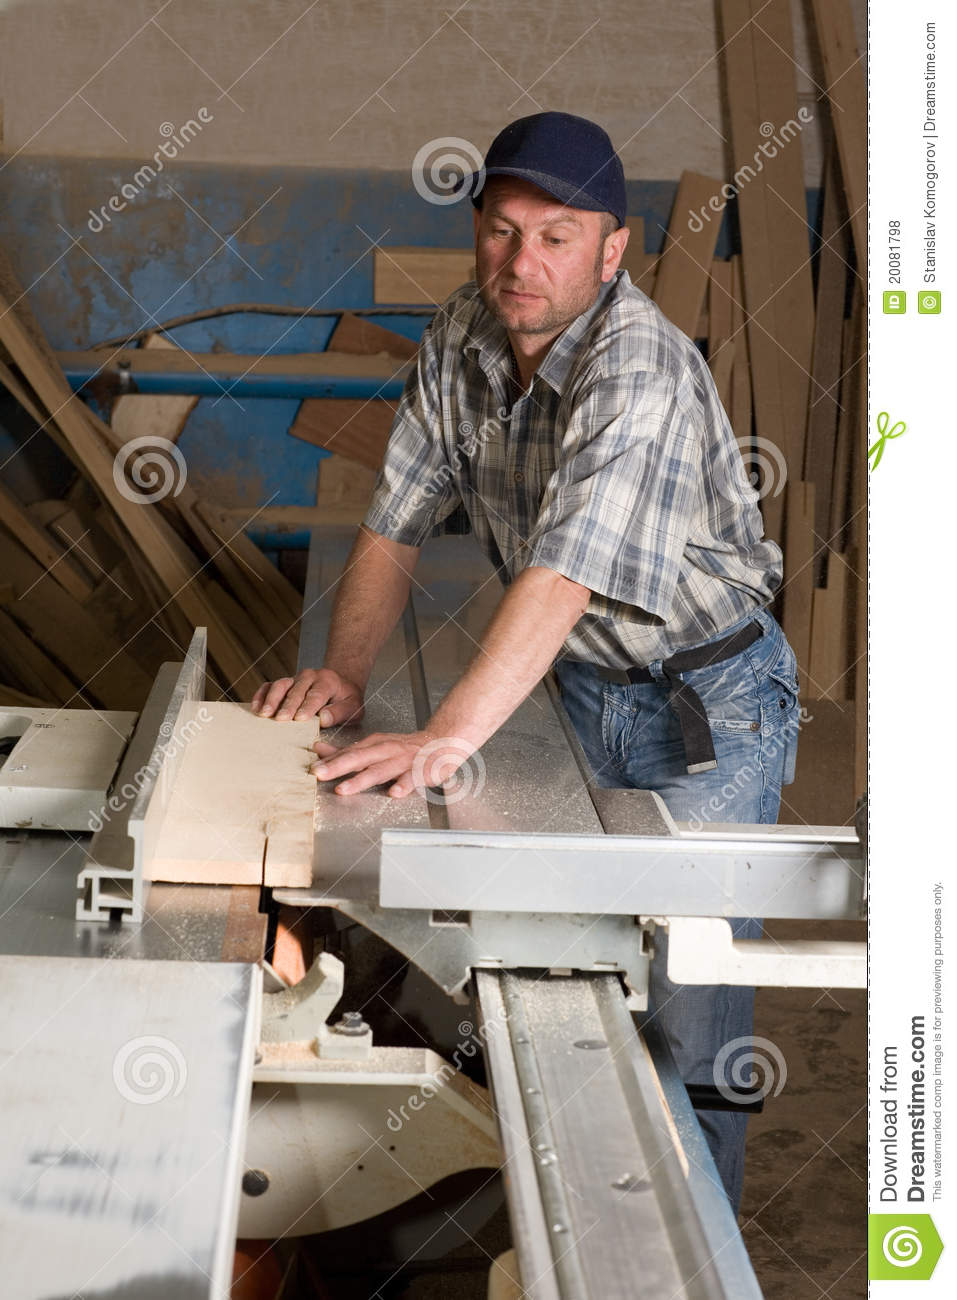 Carpentry Carpenter Woodworker Woodworking Wooden: Carpenter Working On Woodworking Machines Stock Photo